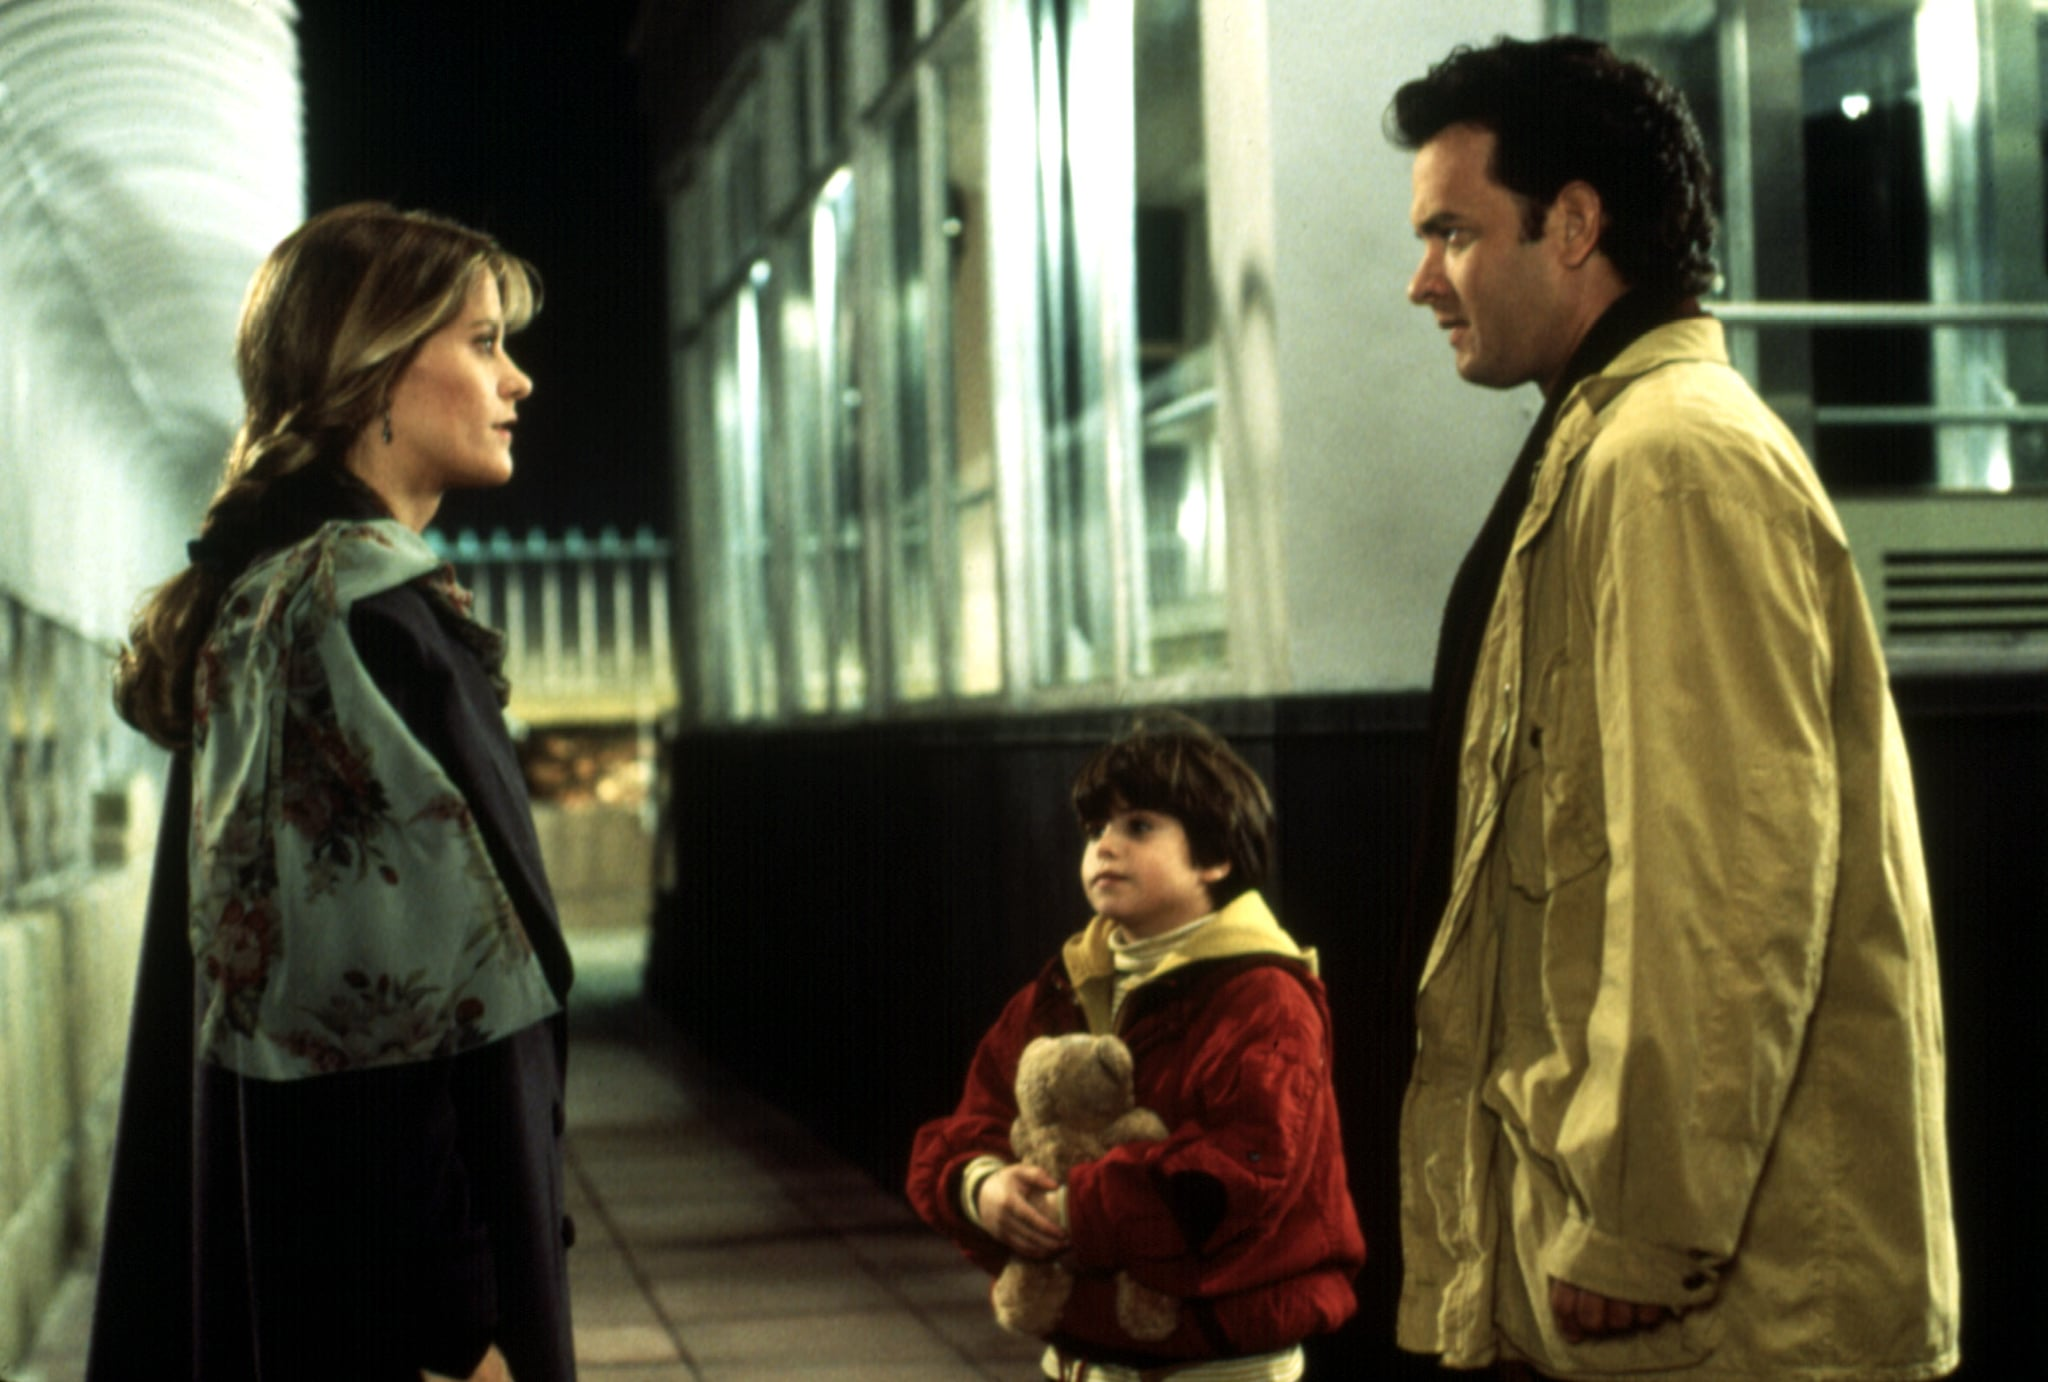 SLEEPLESS IN SEATTLE, Meg Ryan, Ross Malinger, Tom Hanks, 1993